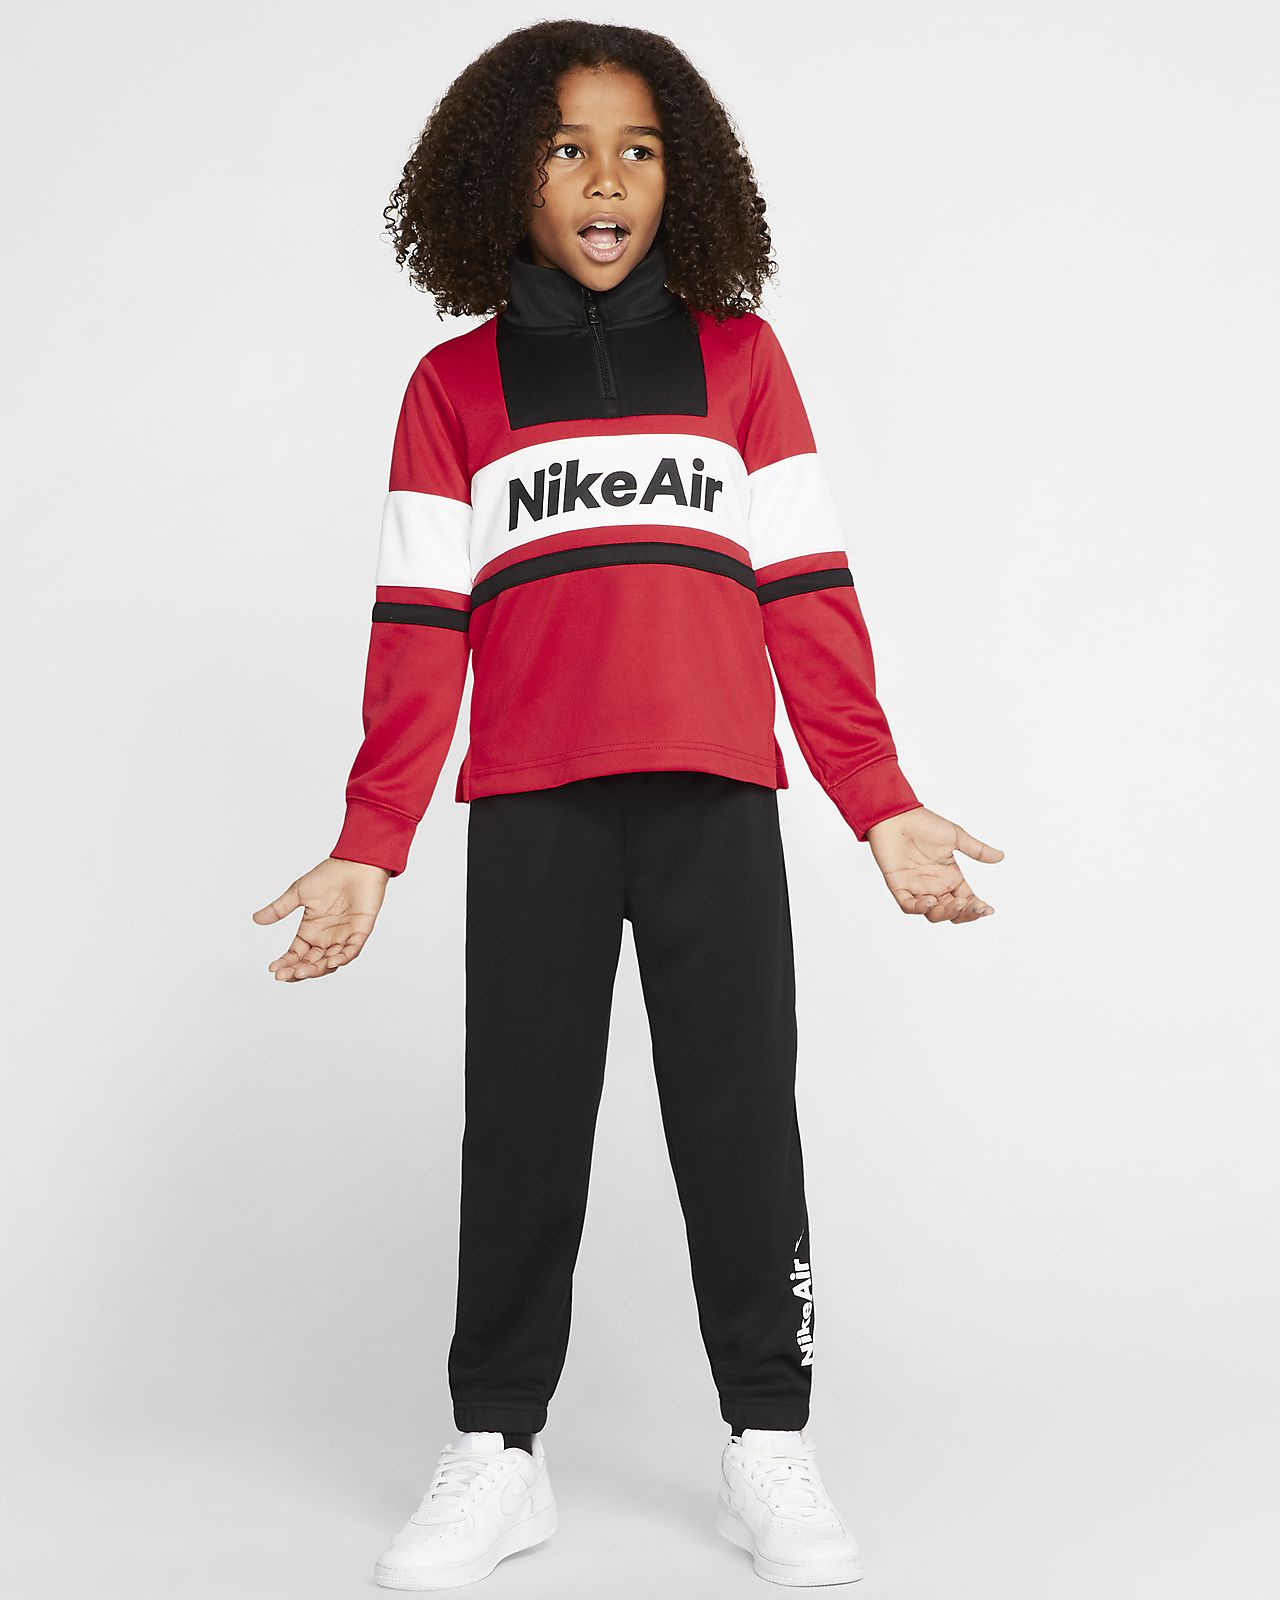 Nike Air Younger Kids' Sweatshirt and Joggers Set